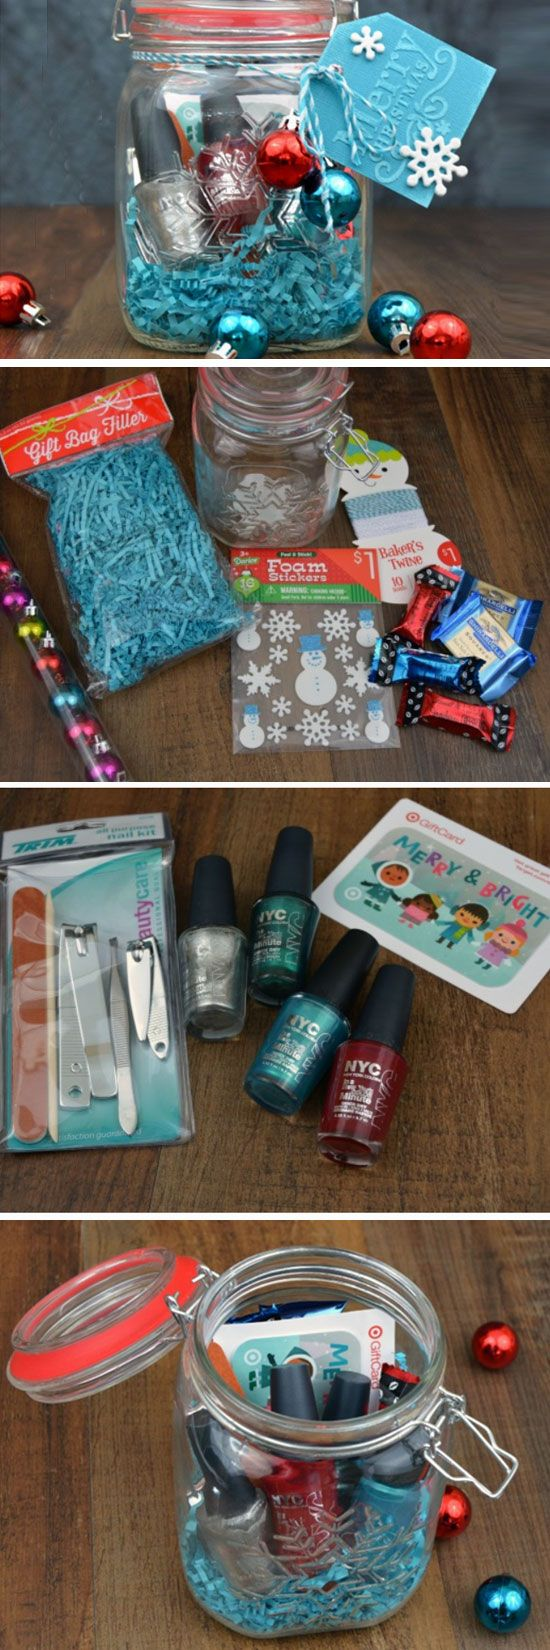 Hidden Gift Card Treasure | DIY Christmas Baskets for Teens | Easy Gift Ideas for Teen Girls